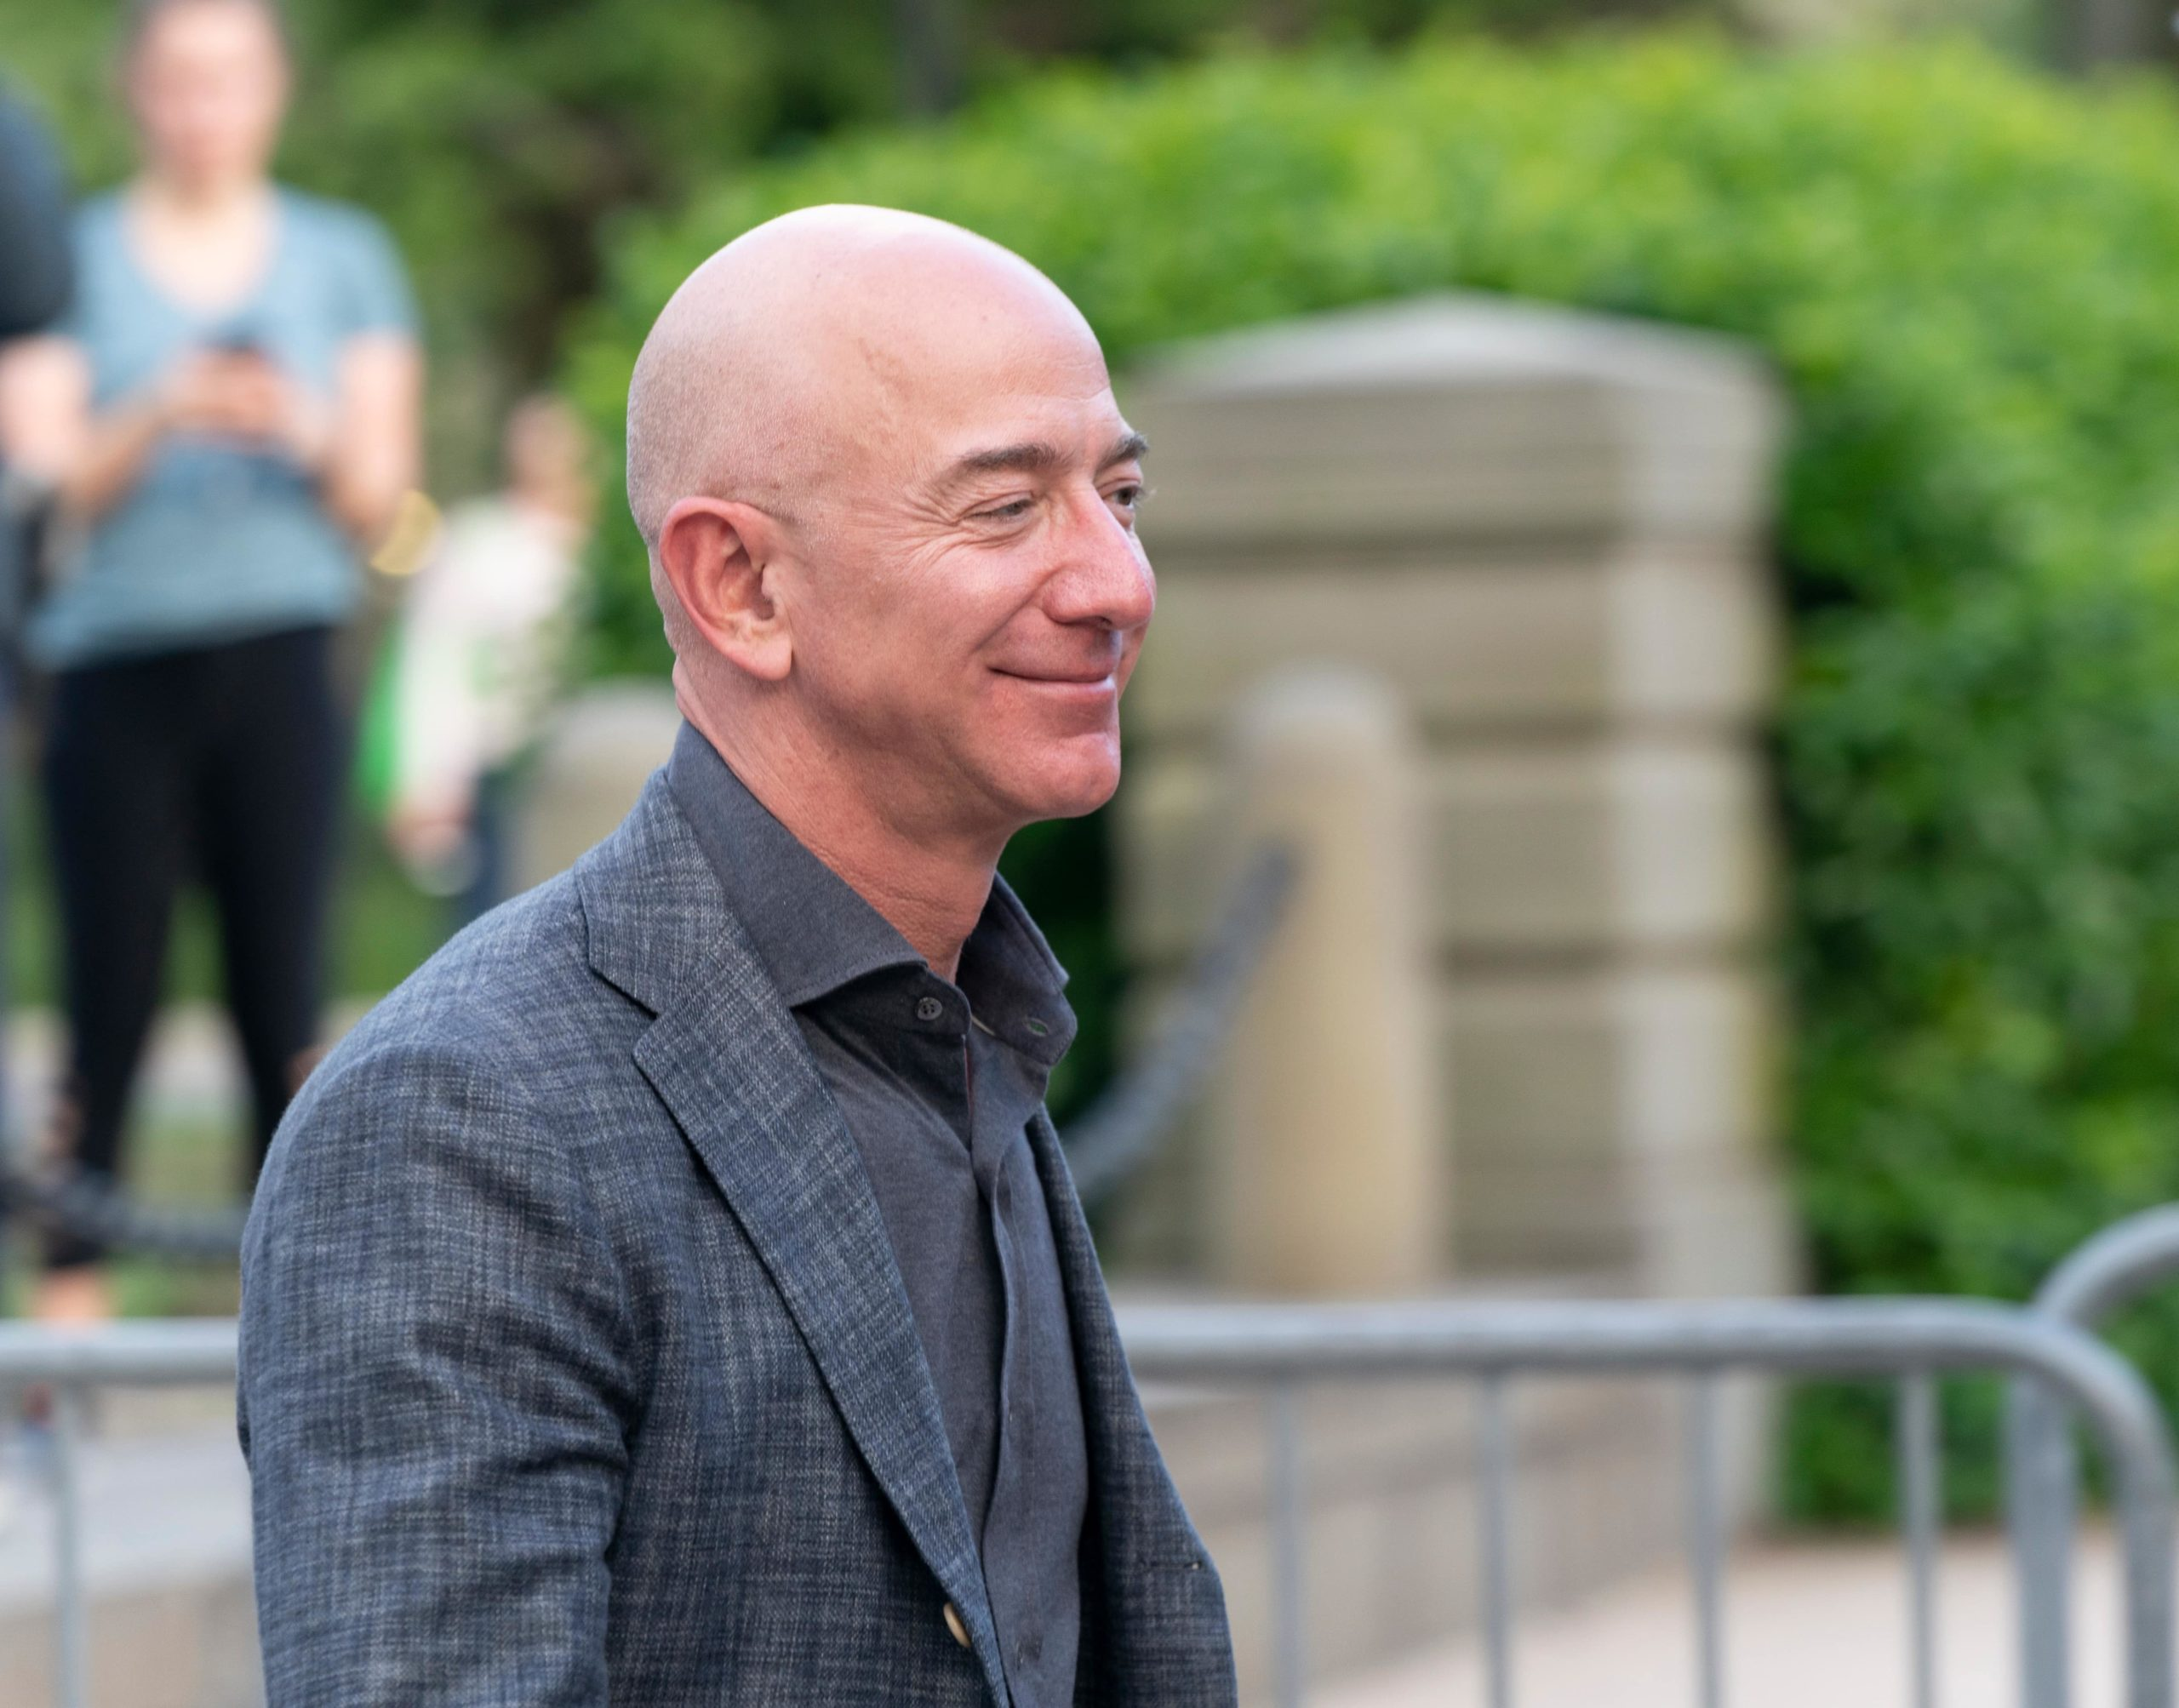 Jeff Bezos is among the richest people